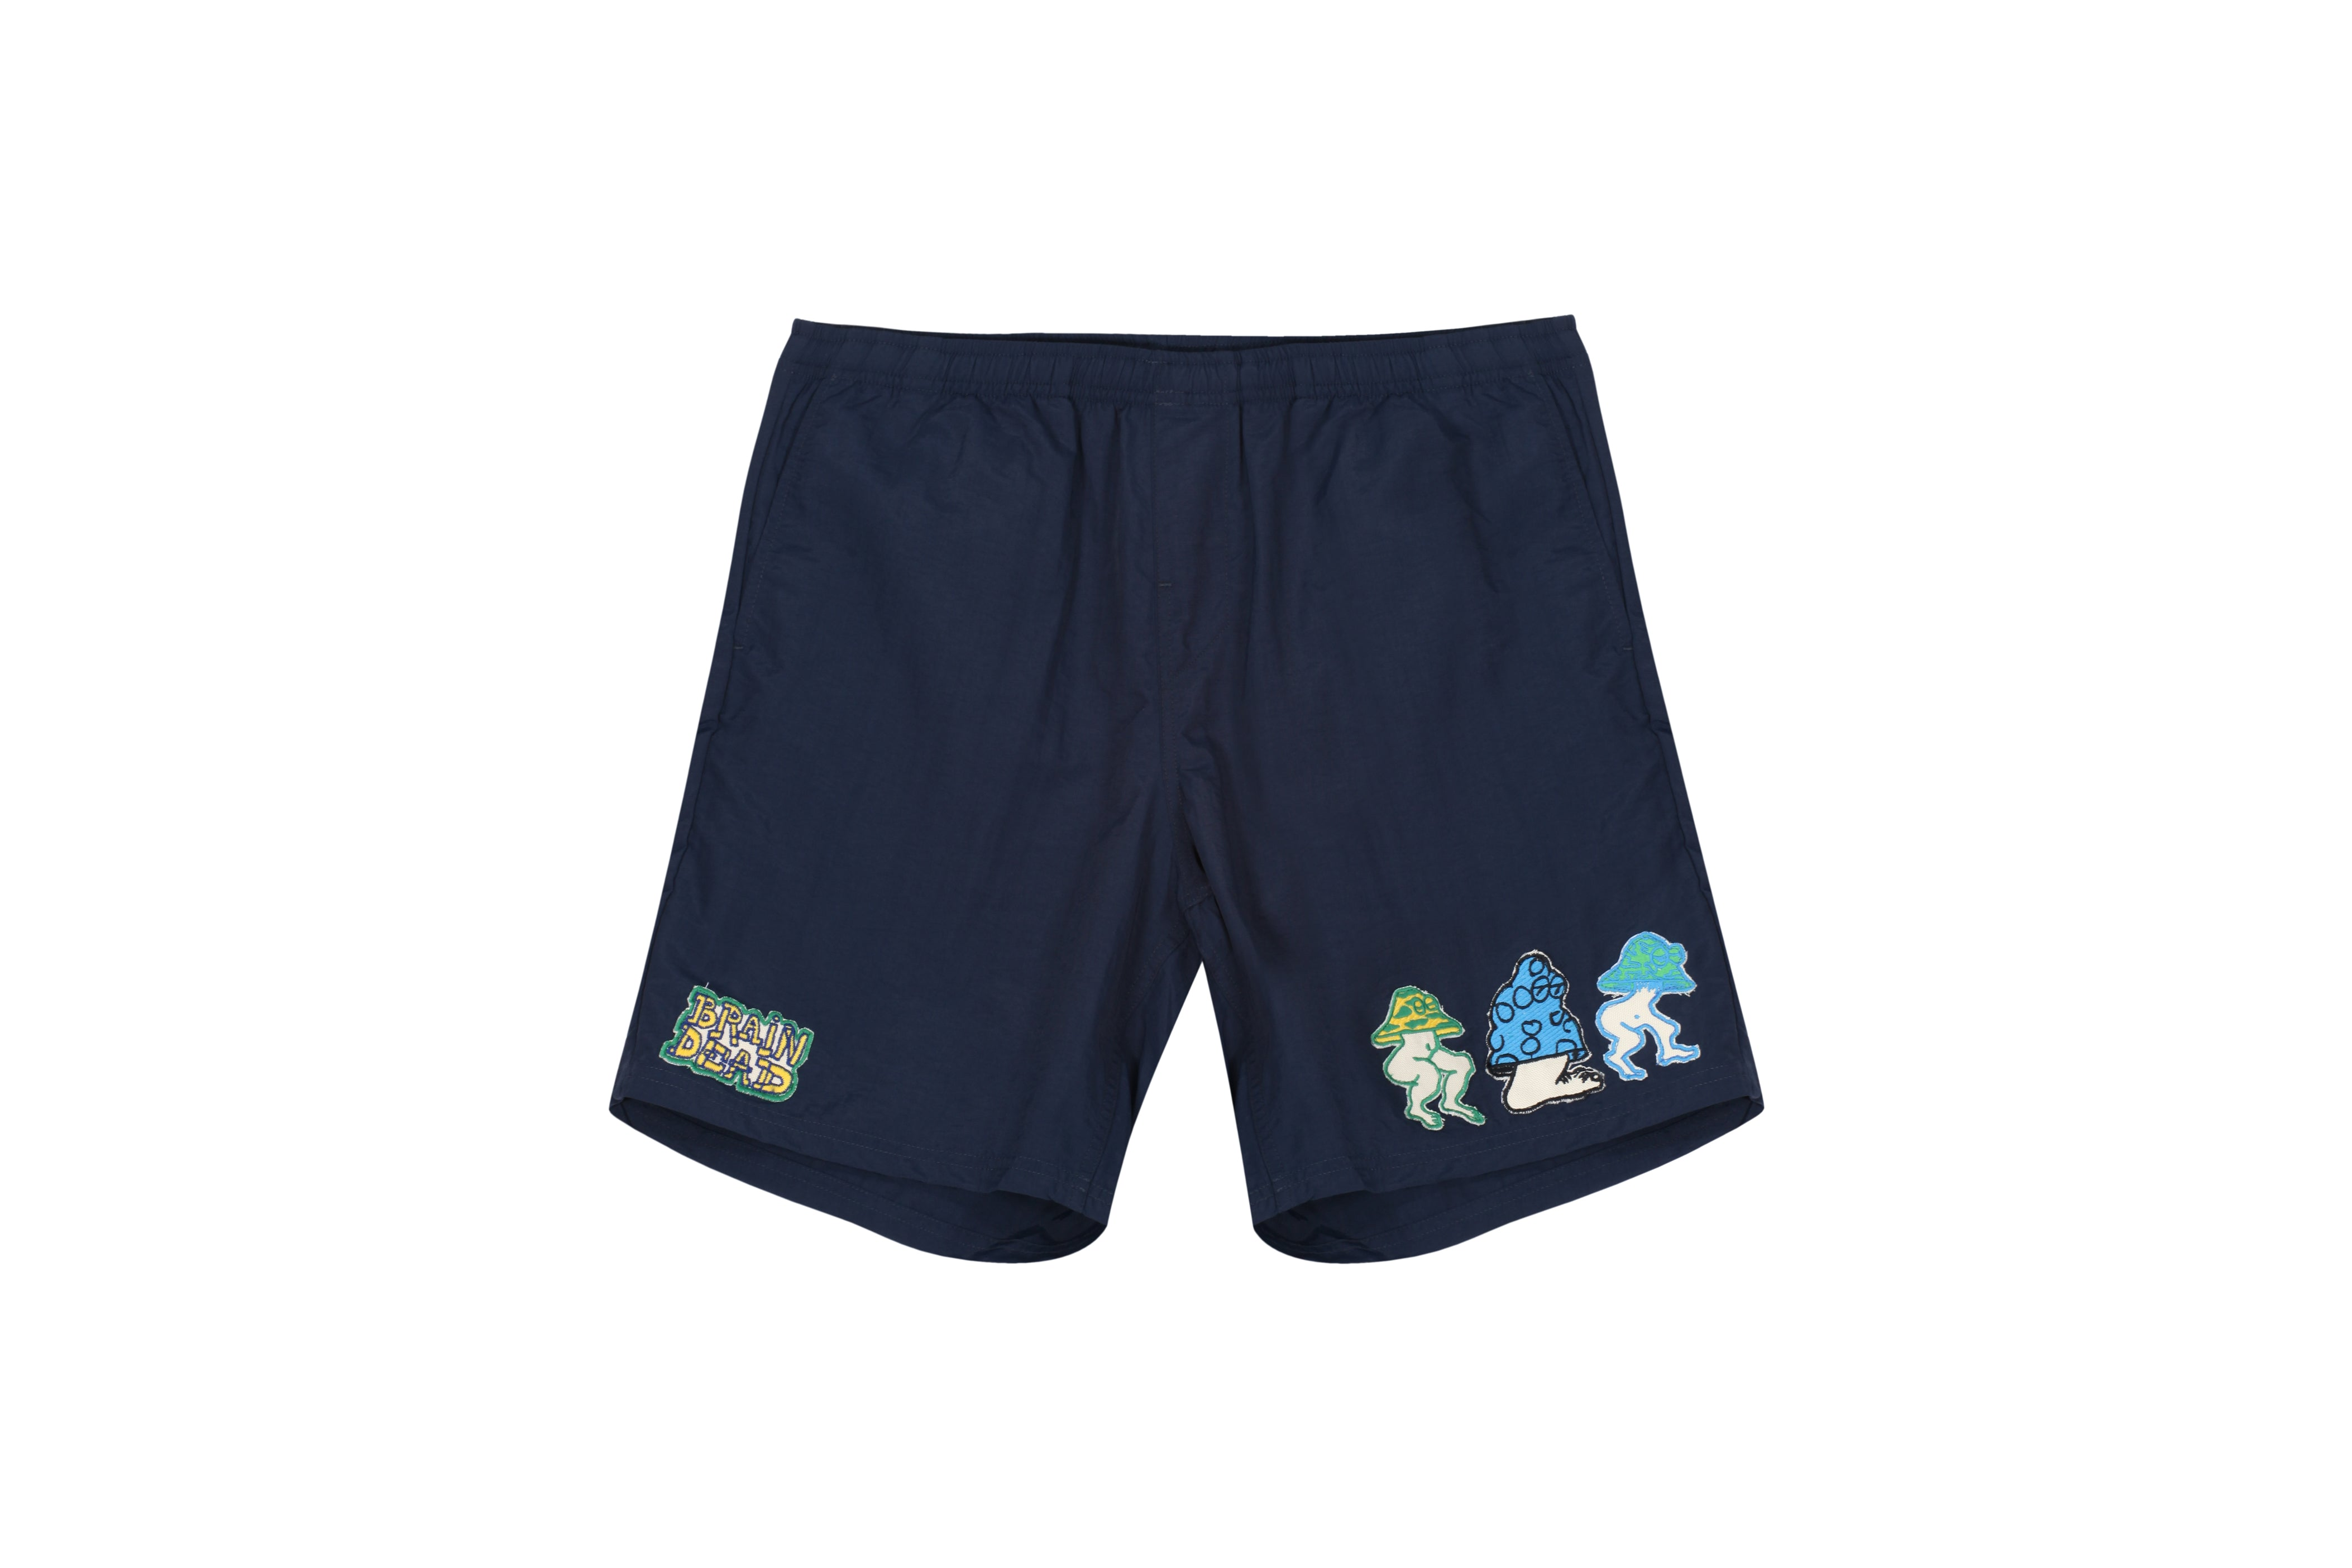 Braindead Mushroom Patch Nylon Beach Short